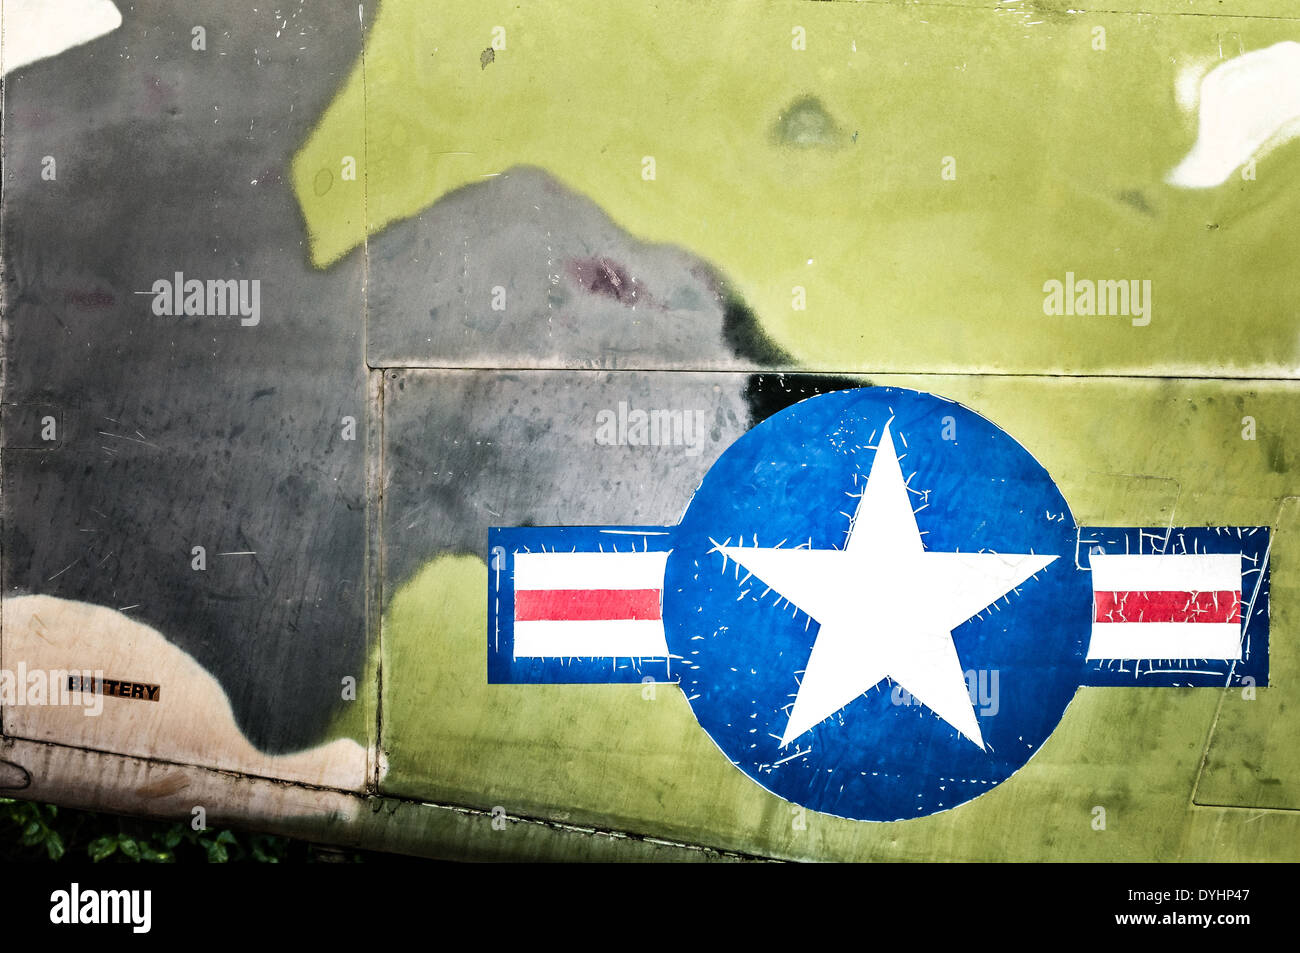 Part of military airplane with United States Air Force sign. Big white star in blue circle with stripes aside. - Stock Image